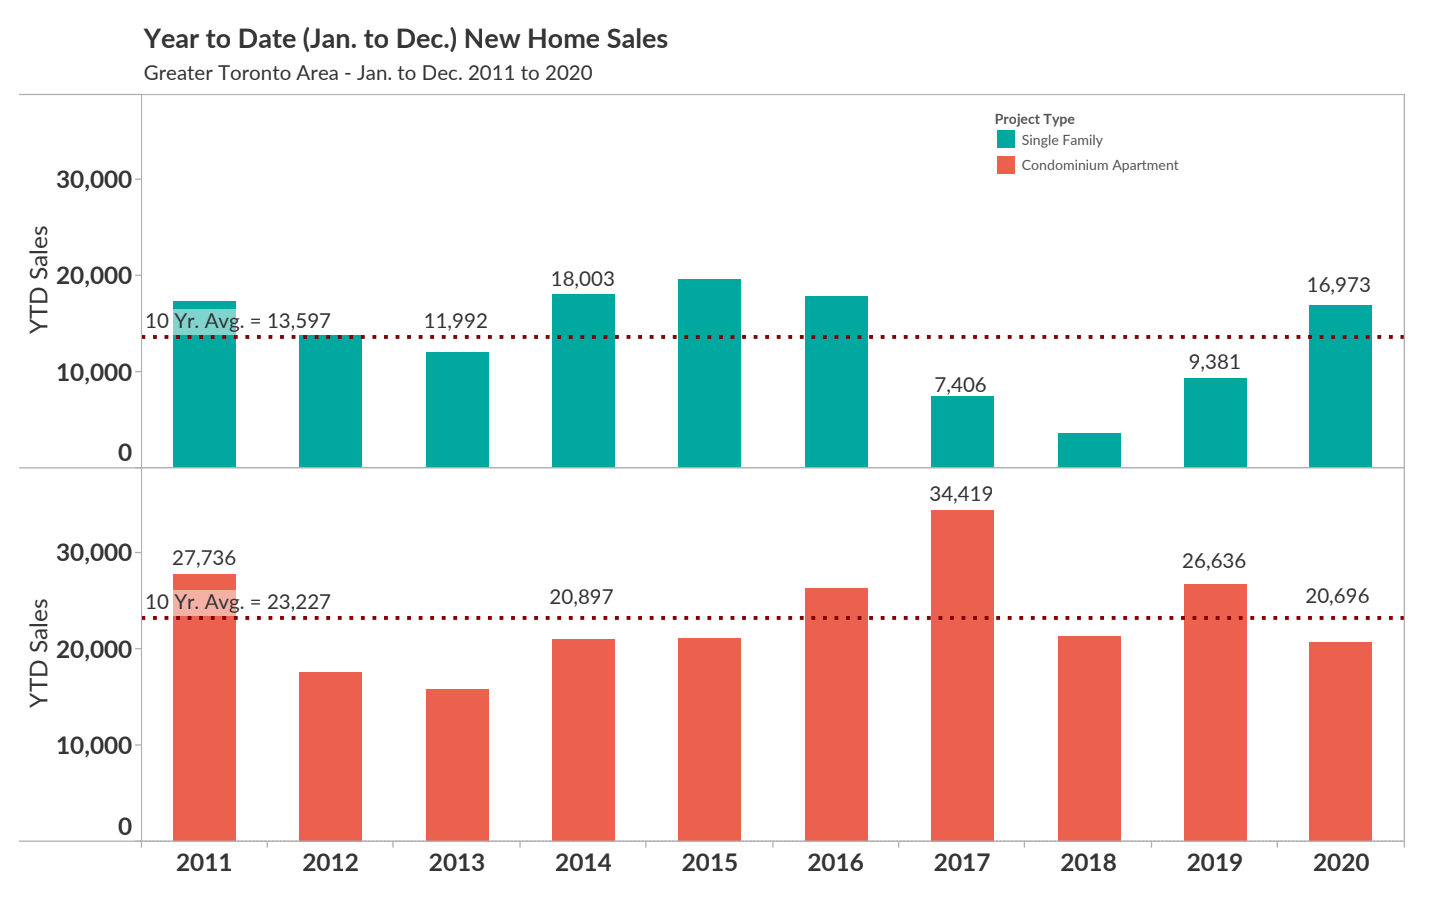 Single-Family New Home Sales in GTA Up 81% Year-Over-Year in 2020